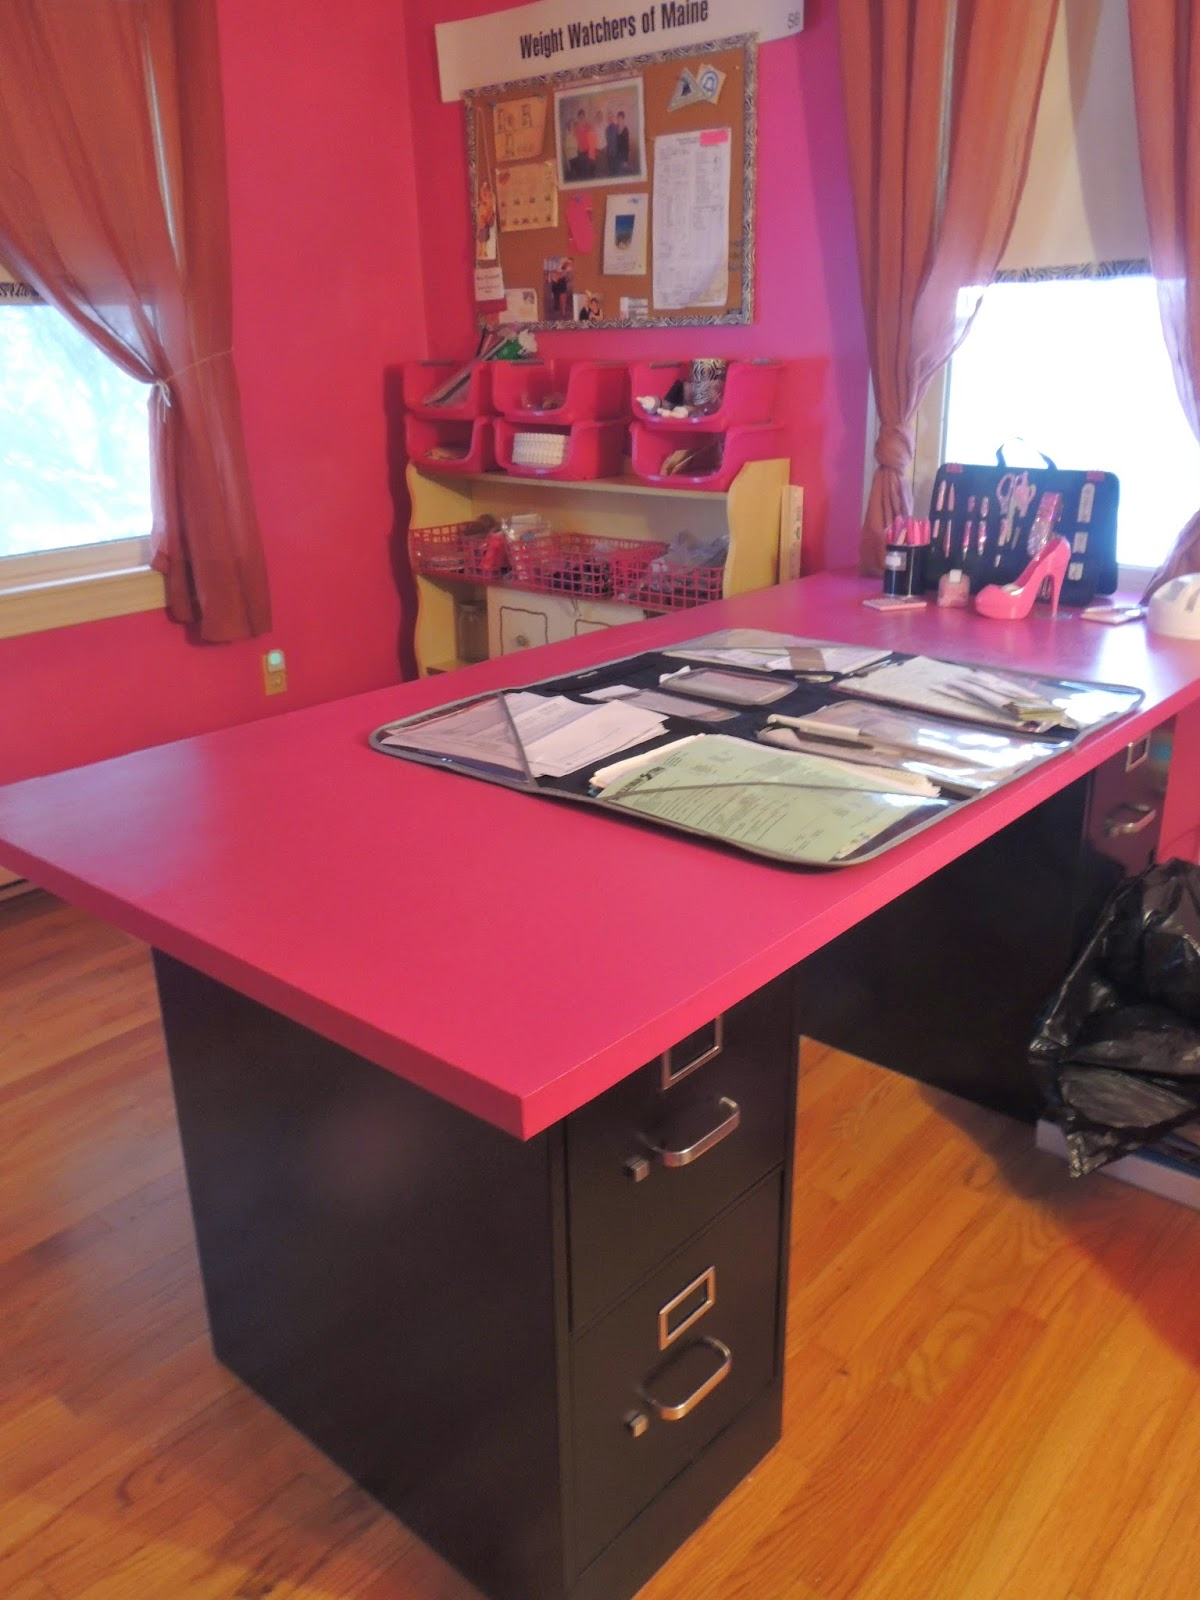 22 applegate lane diy craft room on a budget